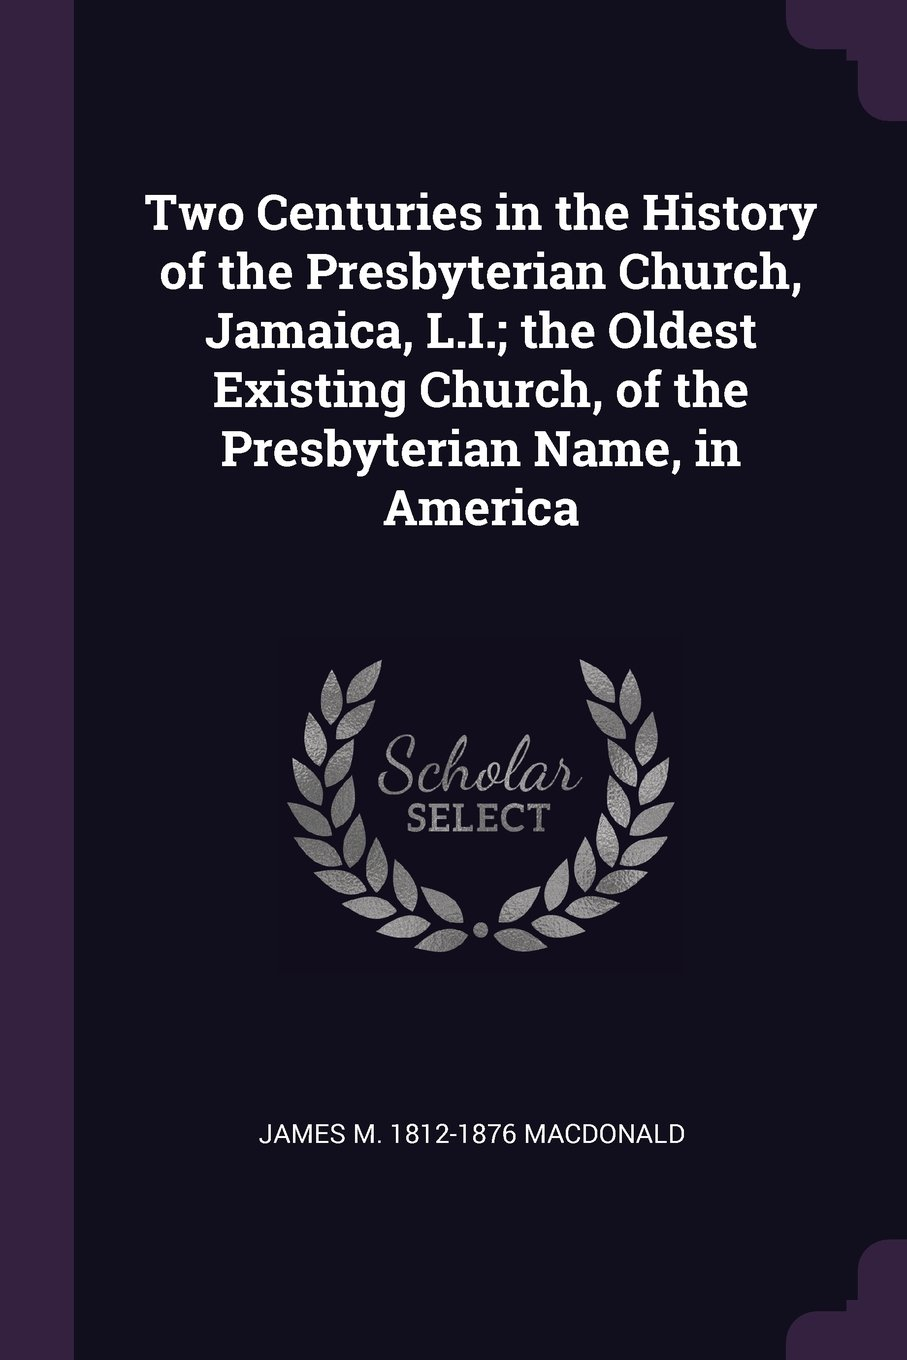 Two Centuries in the History of the Presbyterian Church, Jamaica, L.I; the Oldest Existing Church, of the Presbyterian Name, in America